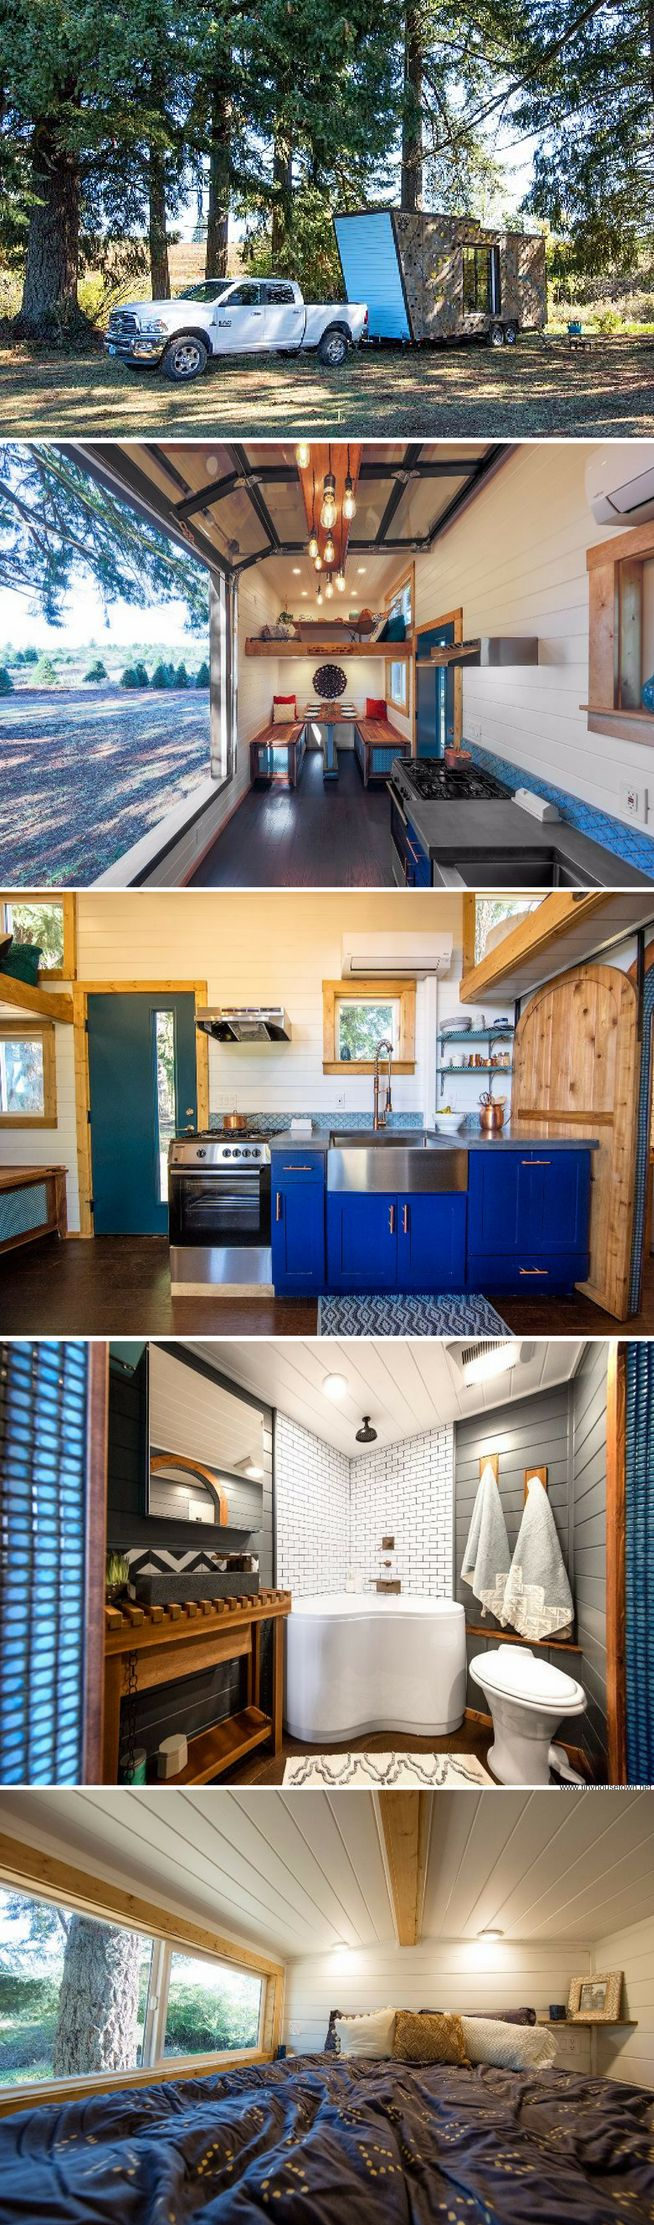 The sapphire house from tiny heirloom tiny house town - A Tiny House From Tiny Heirloom With A Bouldering Wall On The Home S Exterior